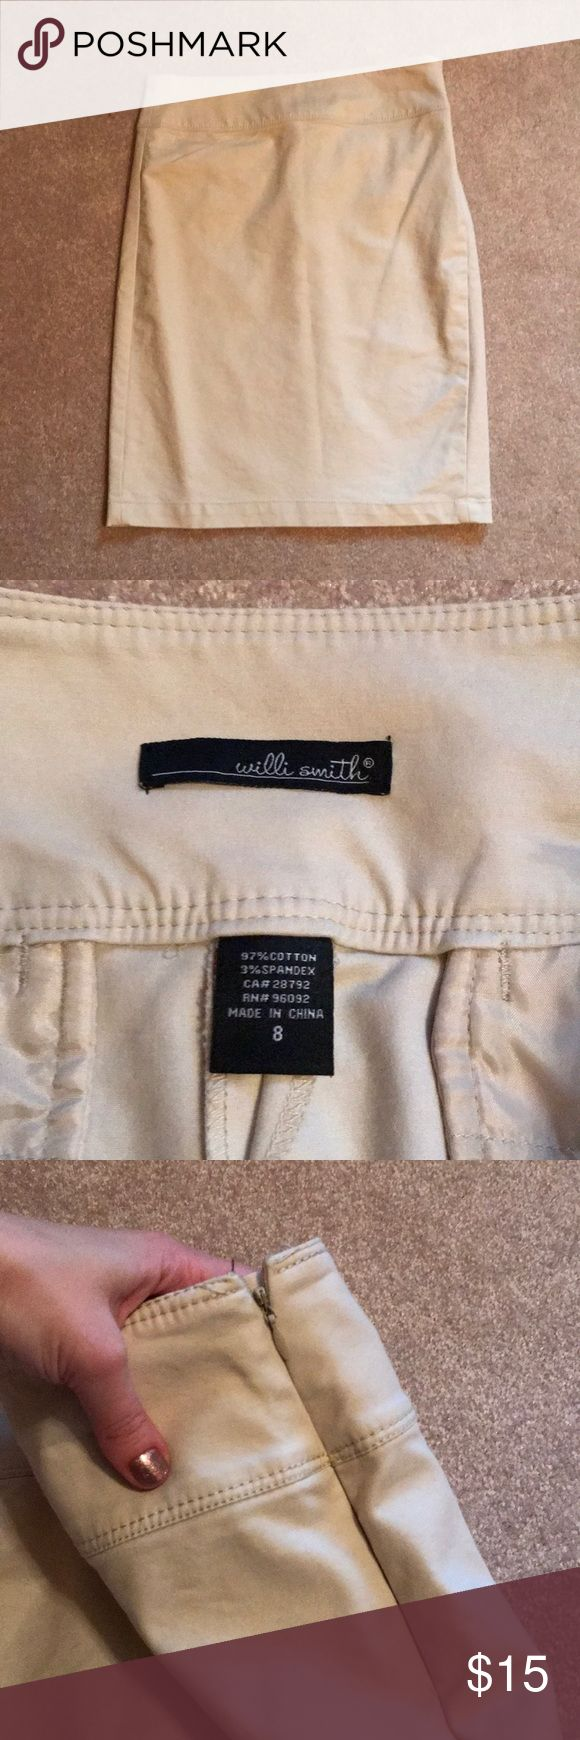 NWOT Willi Smith Tan Pencil Skirt Perfect staple for any closet! 15.5 inch waist and 22.5 inches long Willi Smith Skirts Pencil